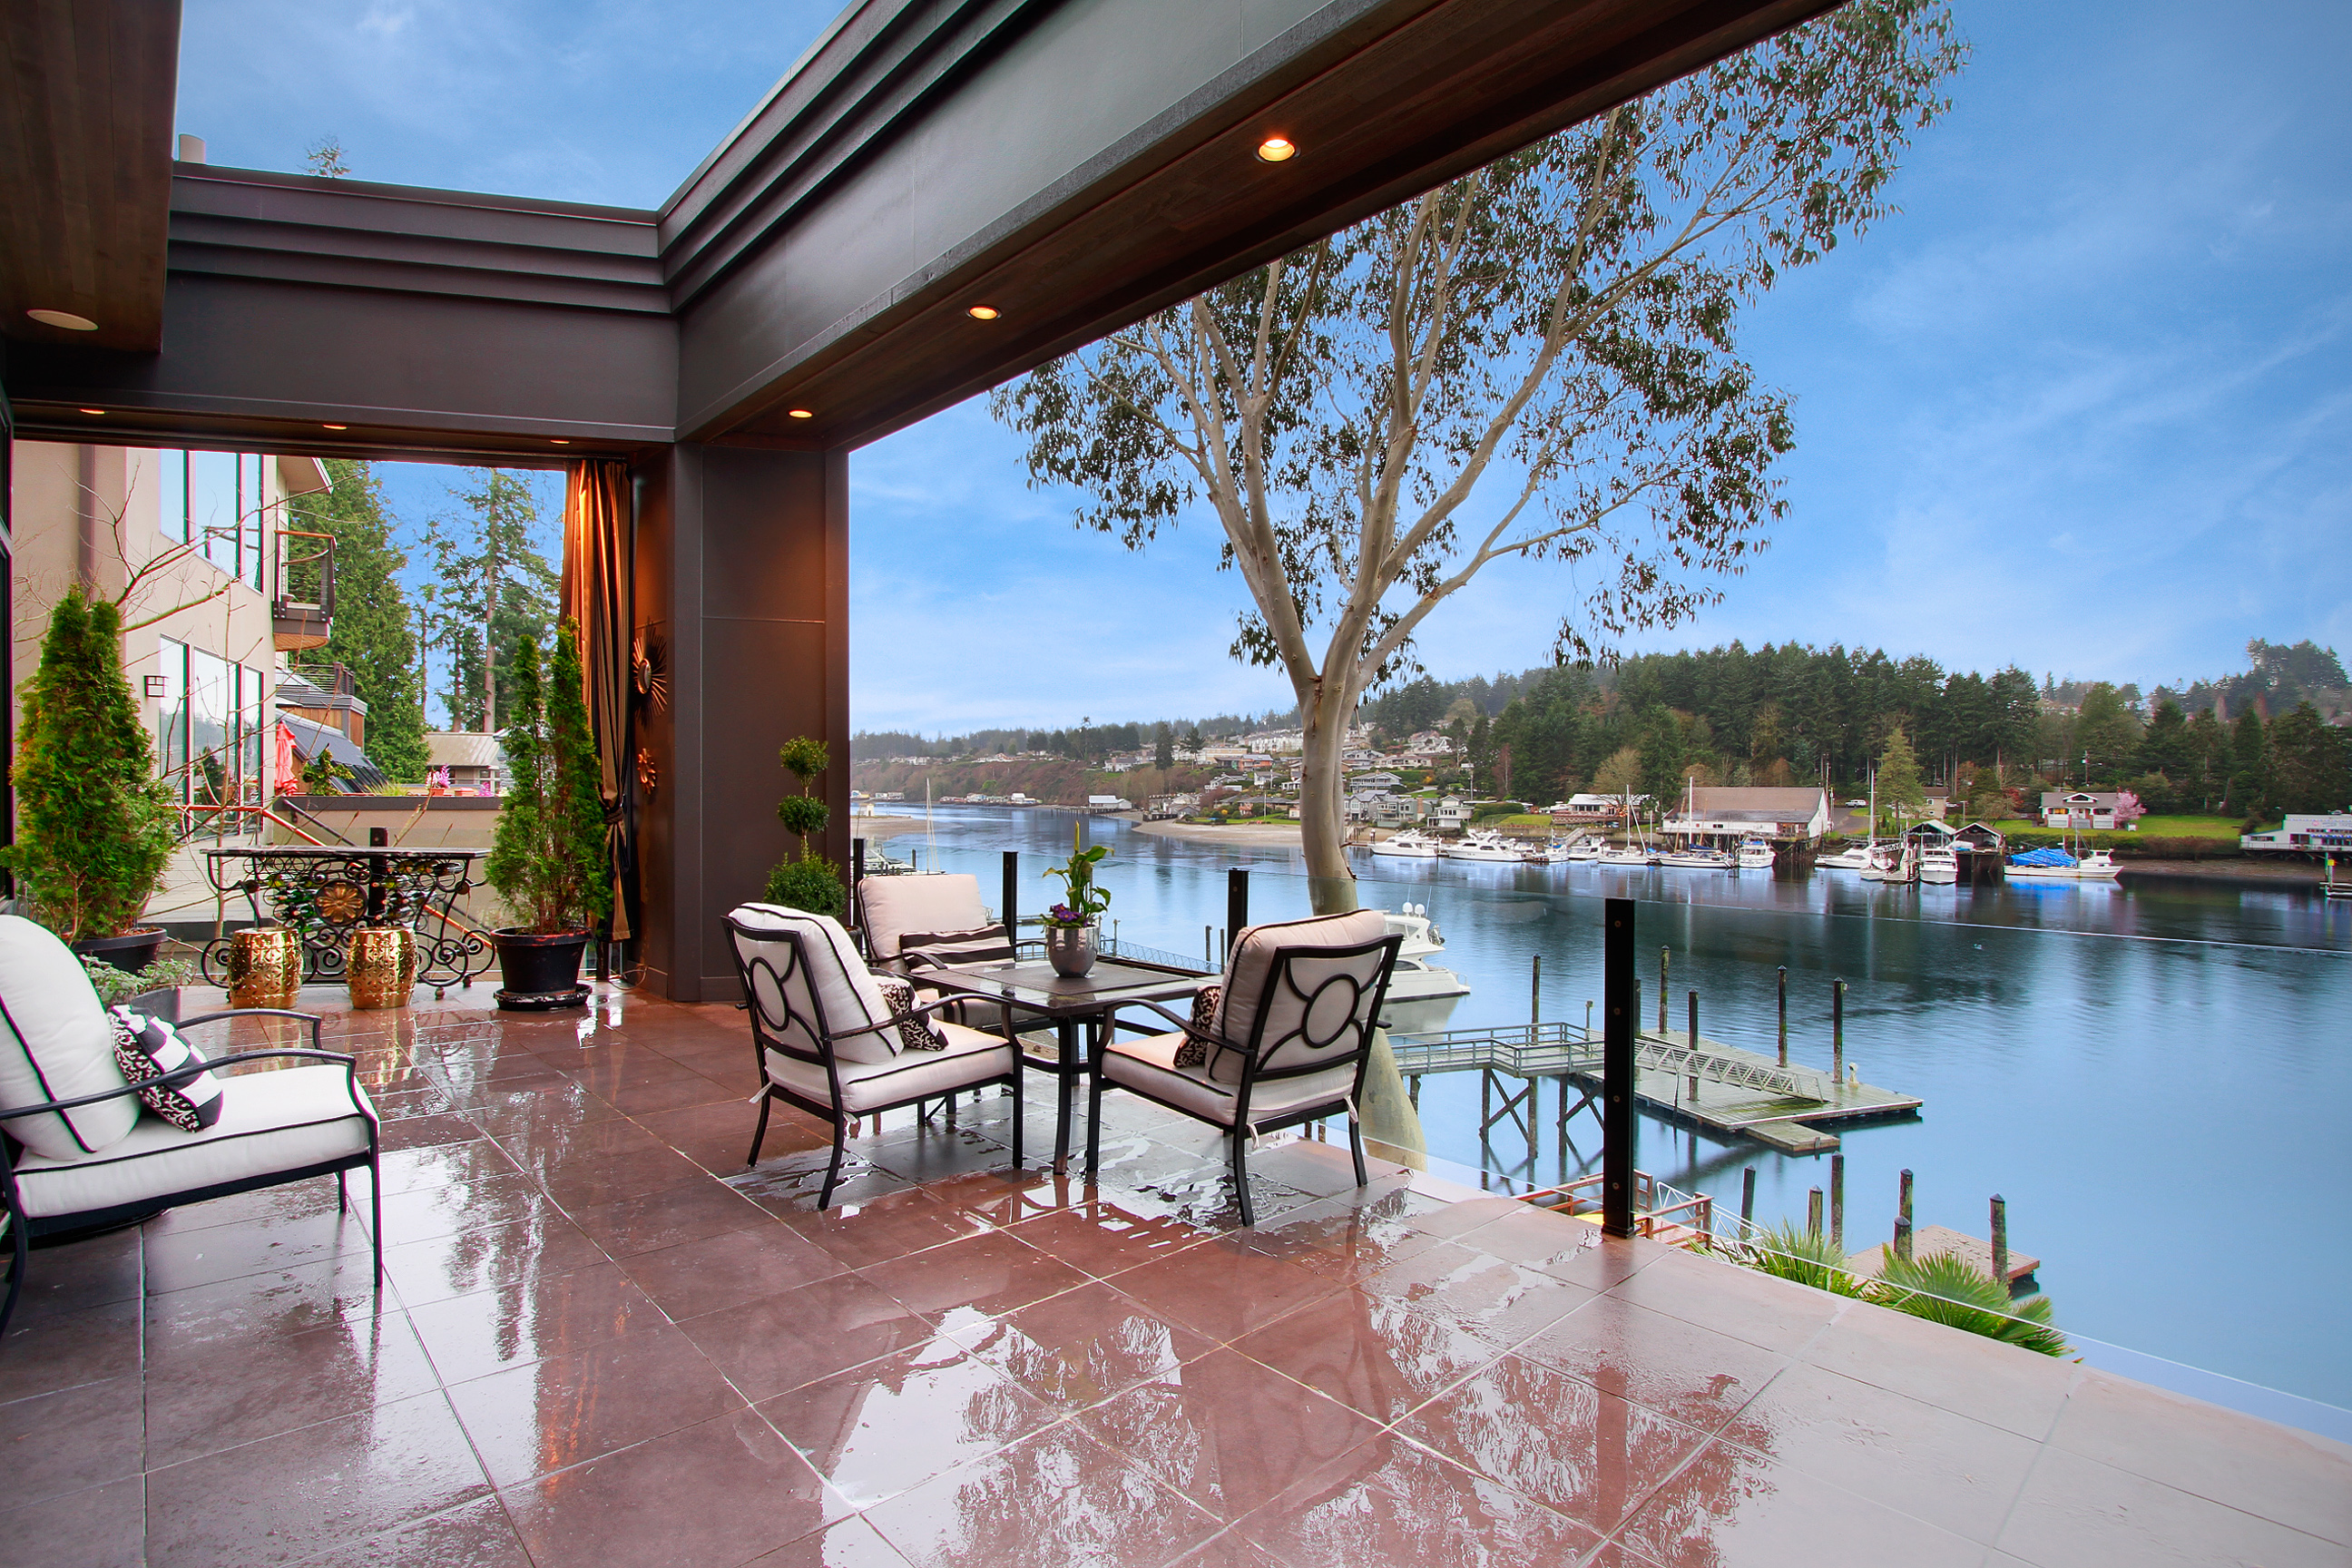 Single Family Home for Sale at ArtfulWaterfront 7930 Goodman Drive NW Gig Harbor, Washington, 98332 United States